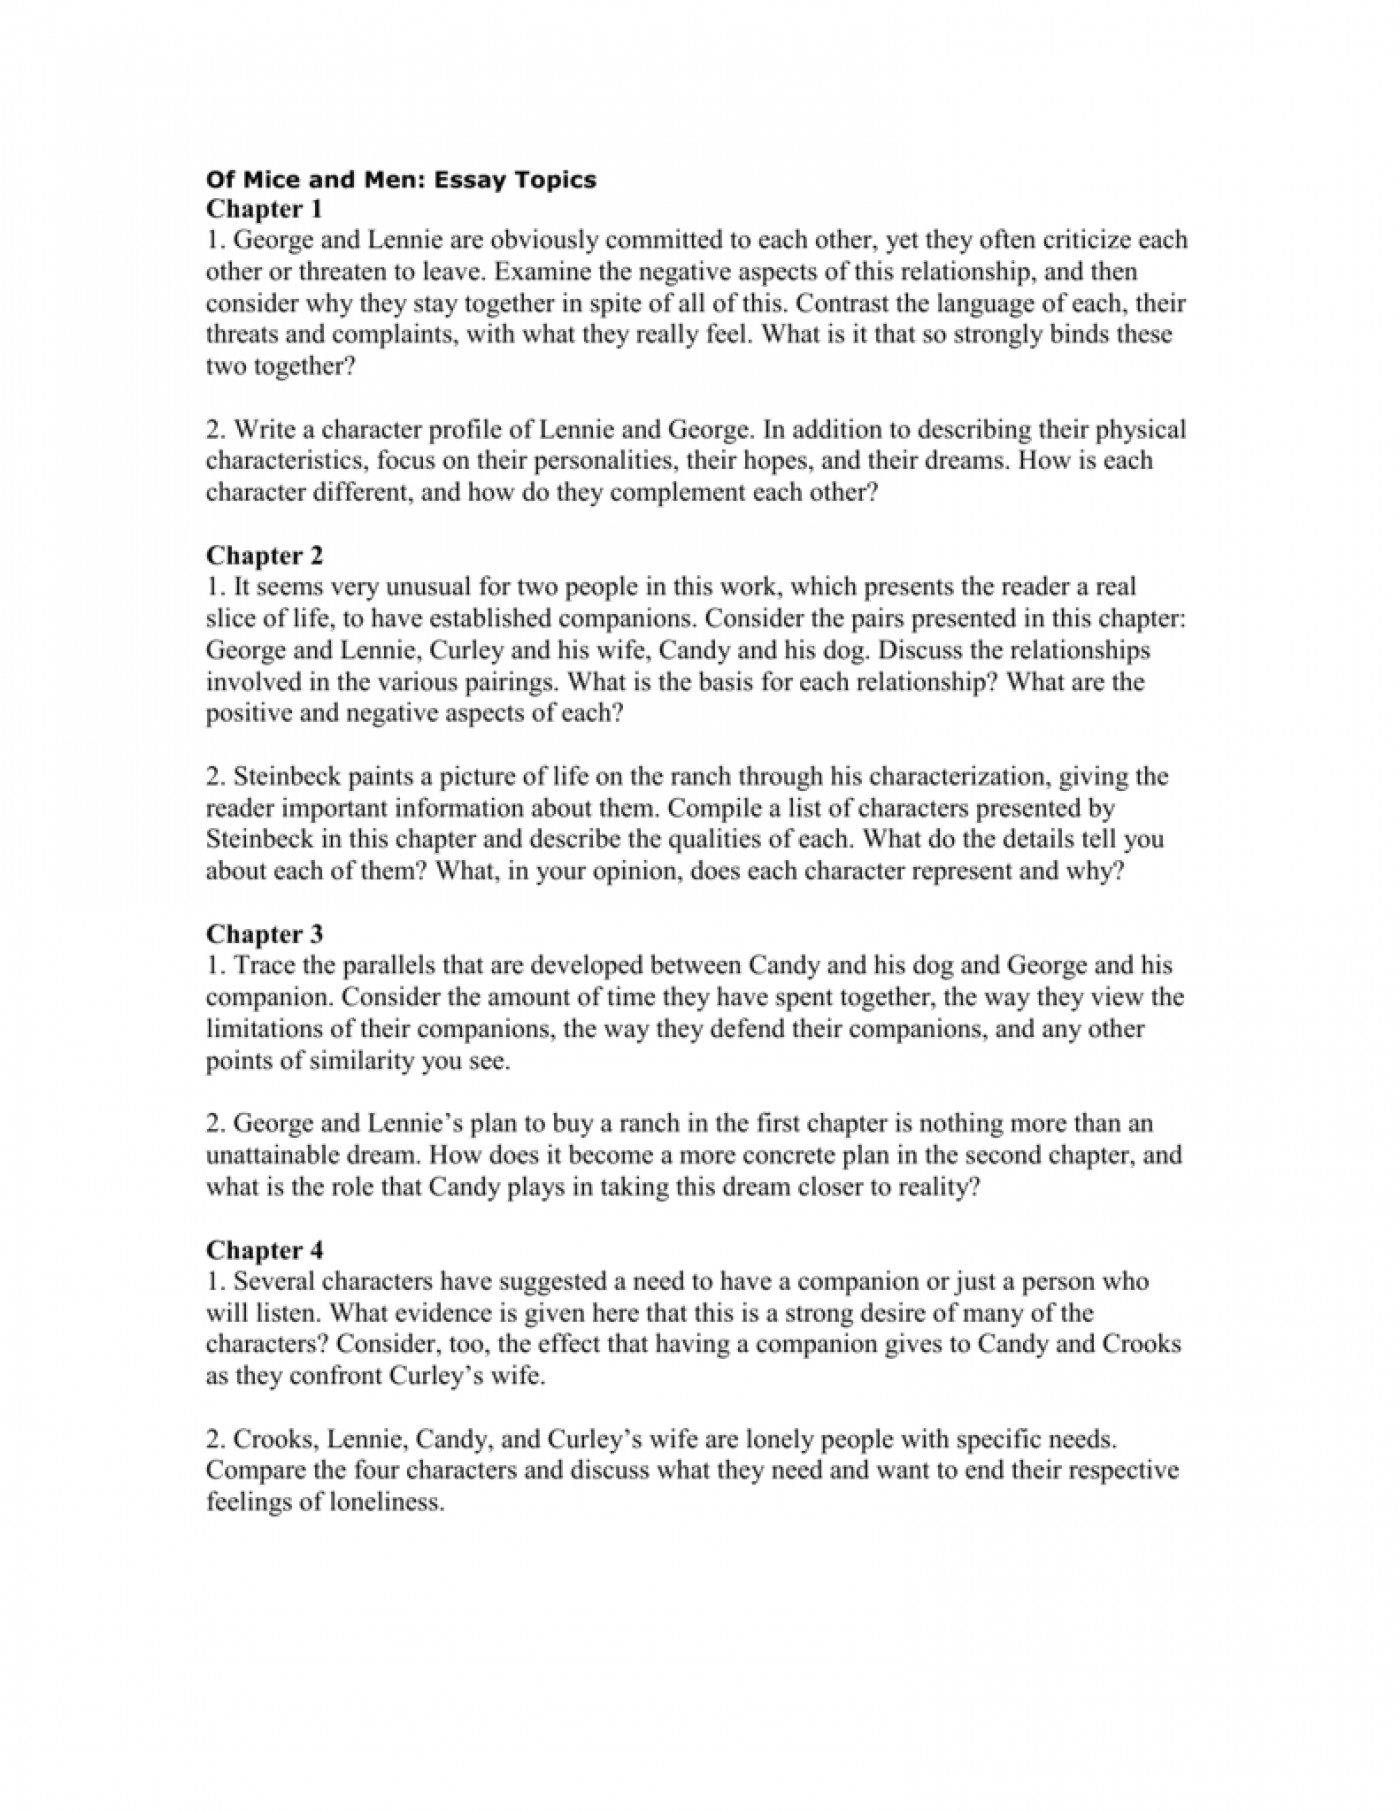 024 Profile Essay Topics Example 007667445 2 Outstanding Personal Good 1400